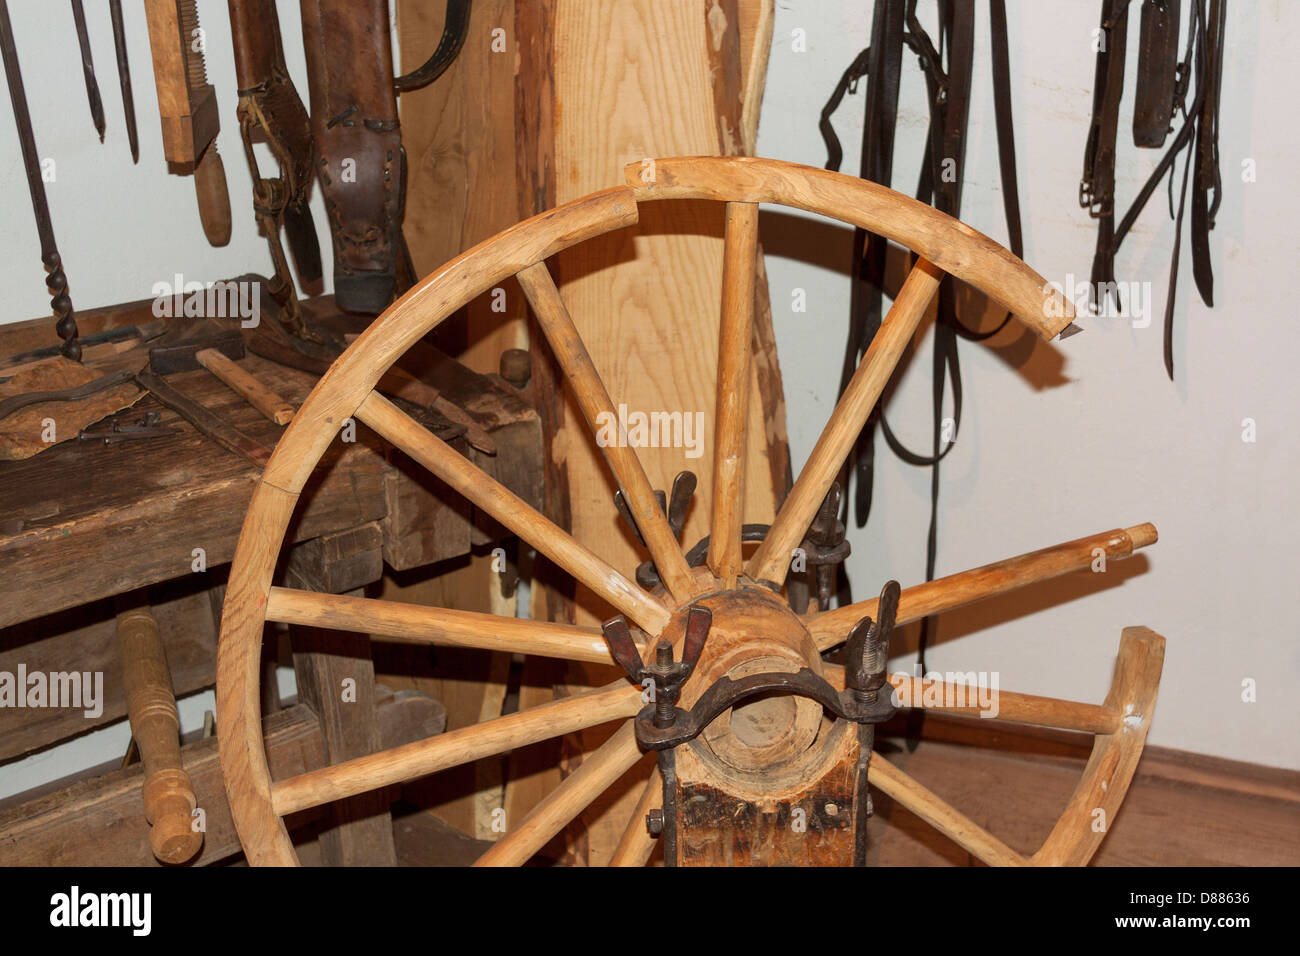 Timber wheel construction exhibition in Museum of the Mazovian Countryside in Sierpc, Poland - Stock Image